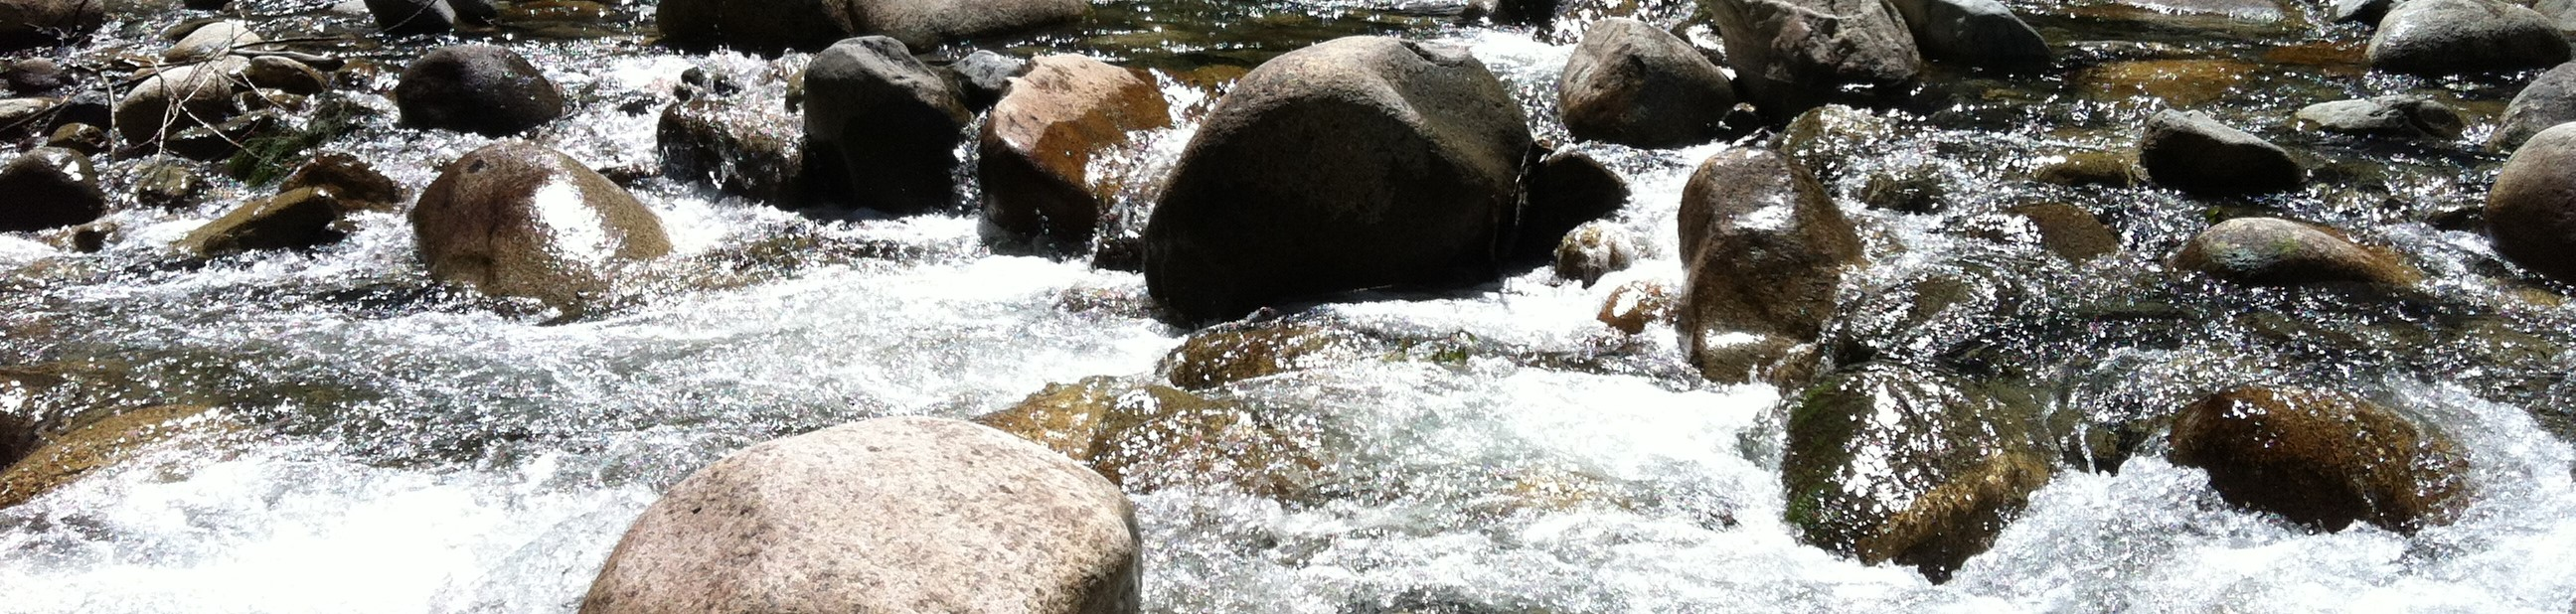 Water from the Rock